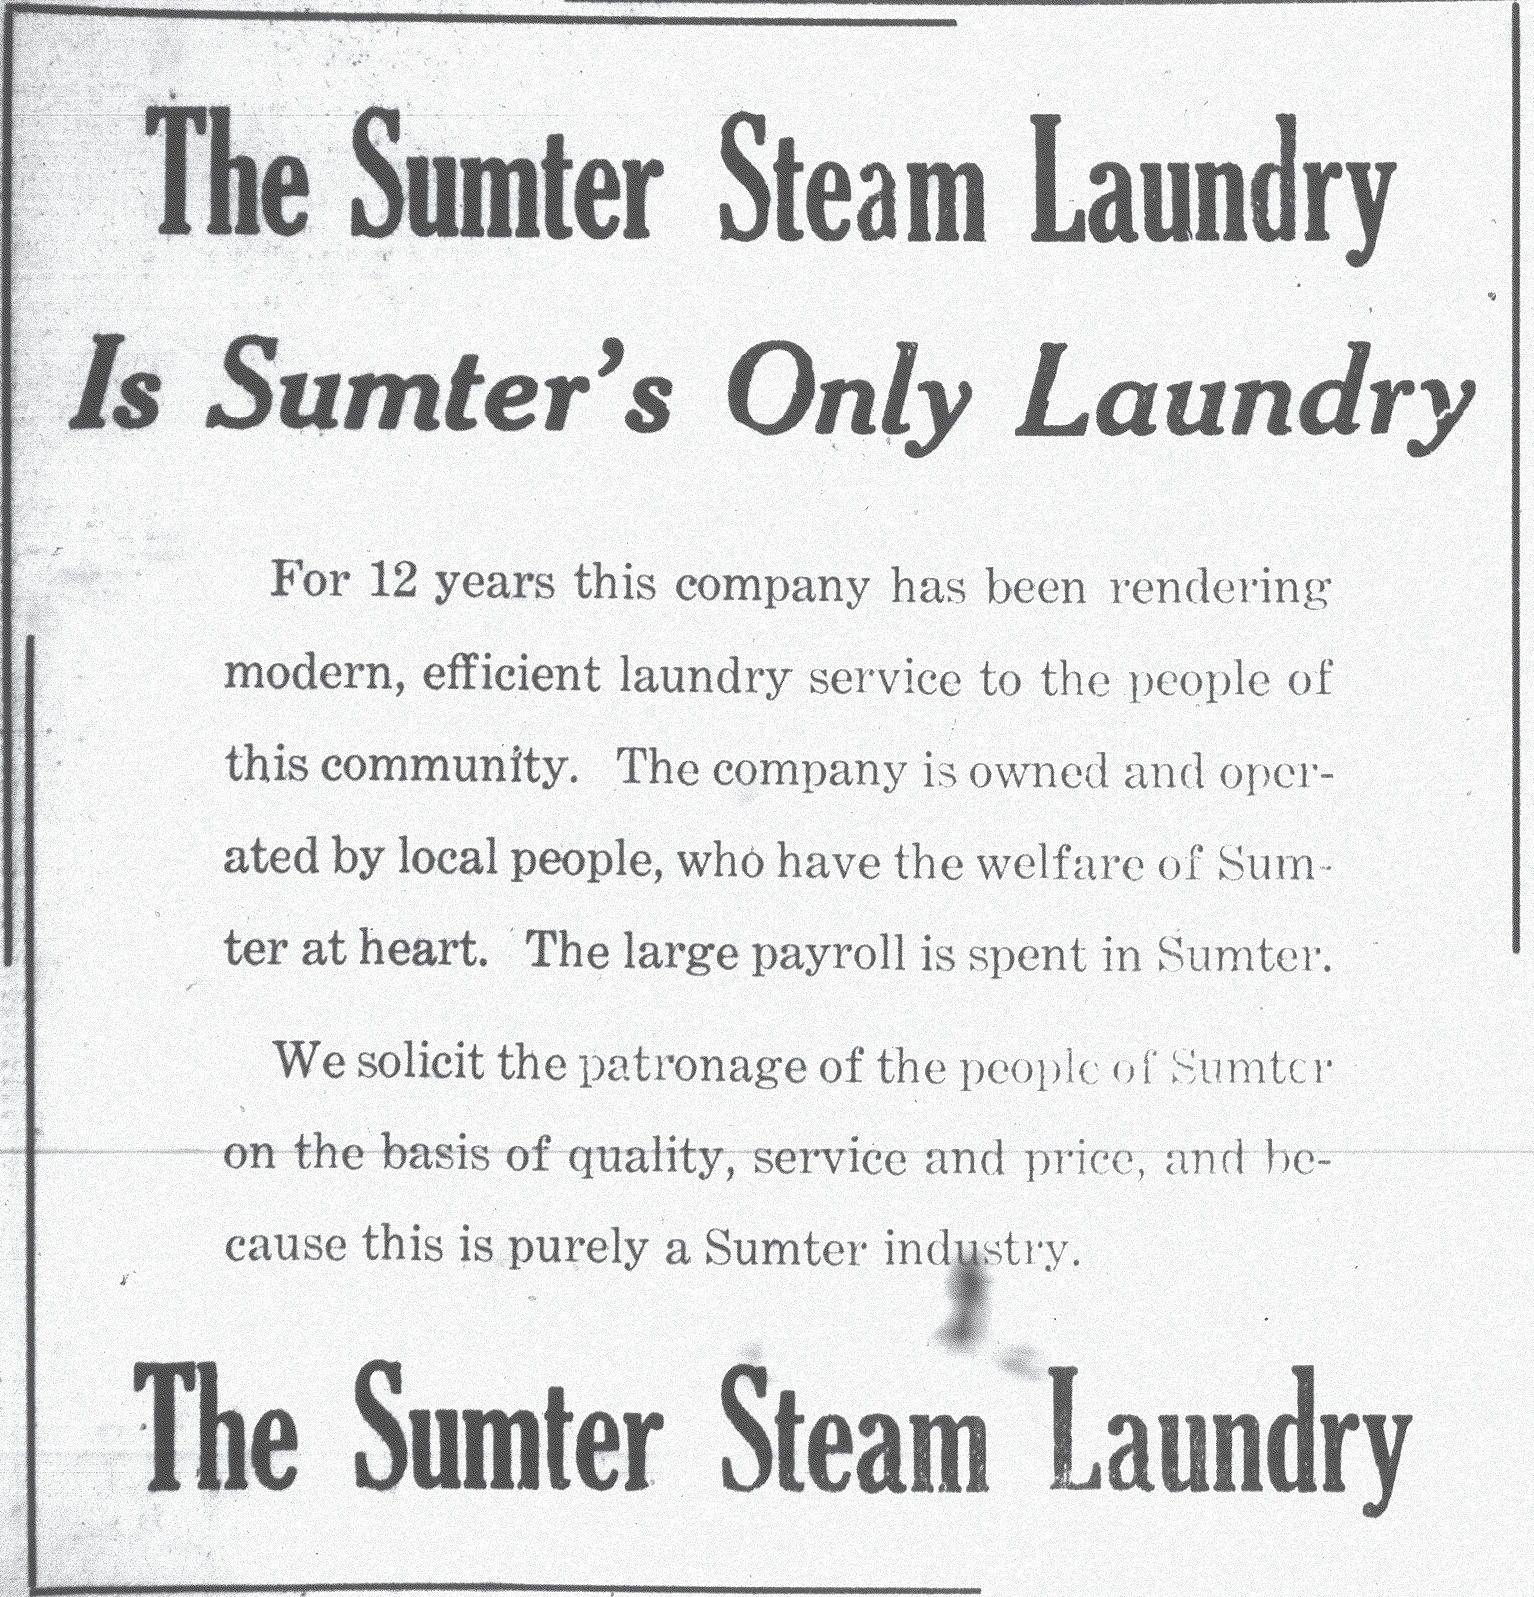 Sumter eventually had a steam laundry.